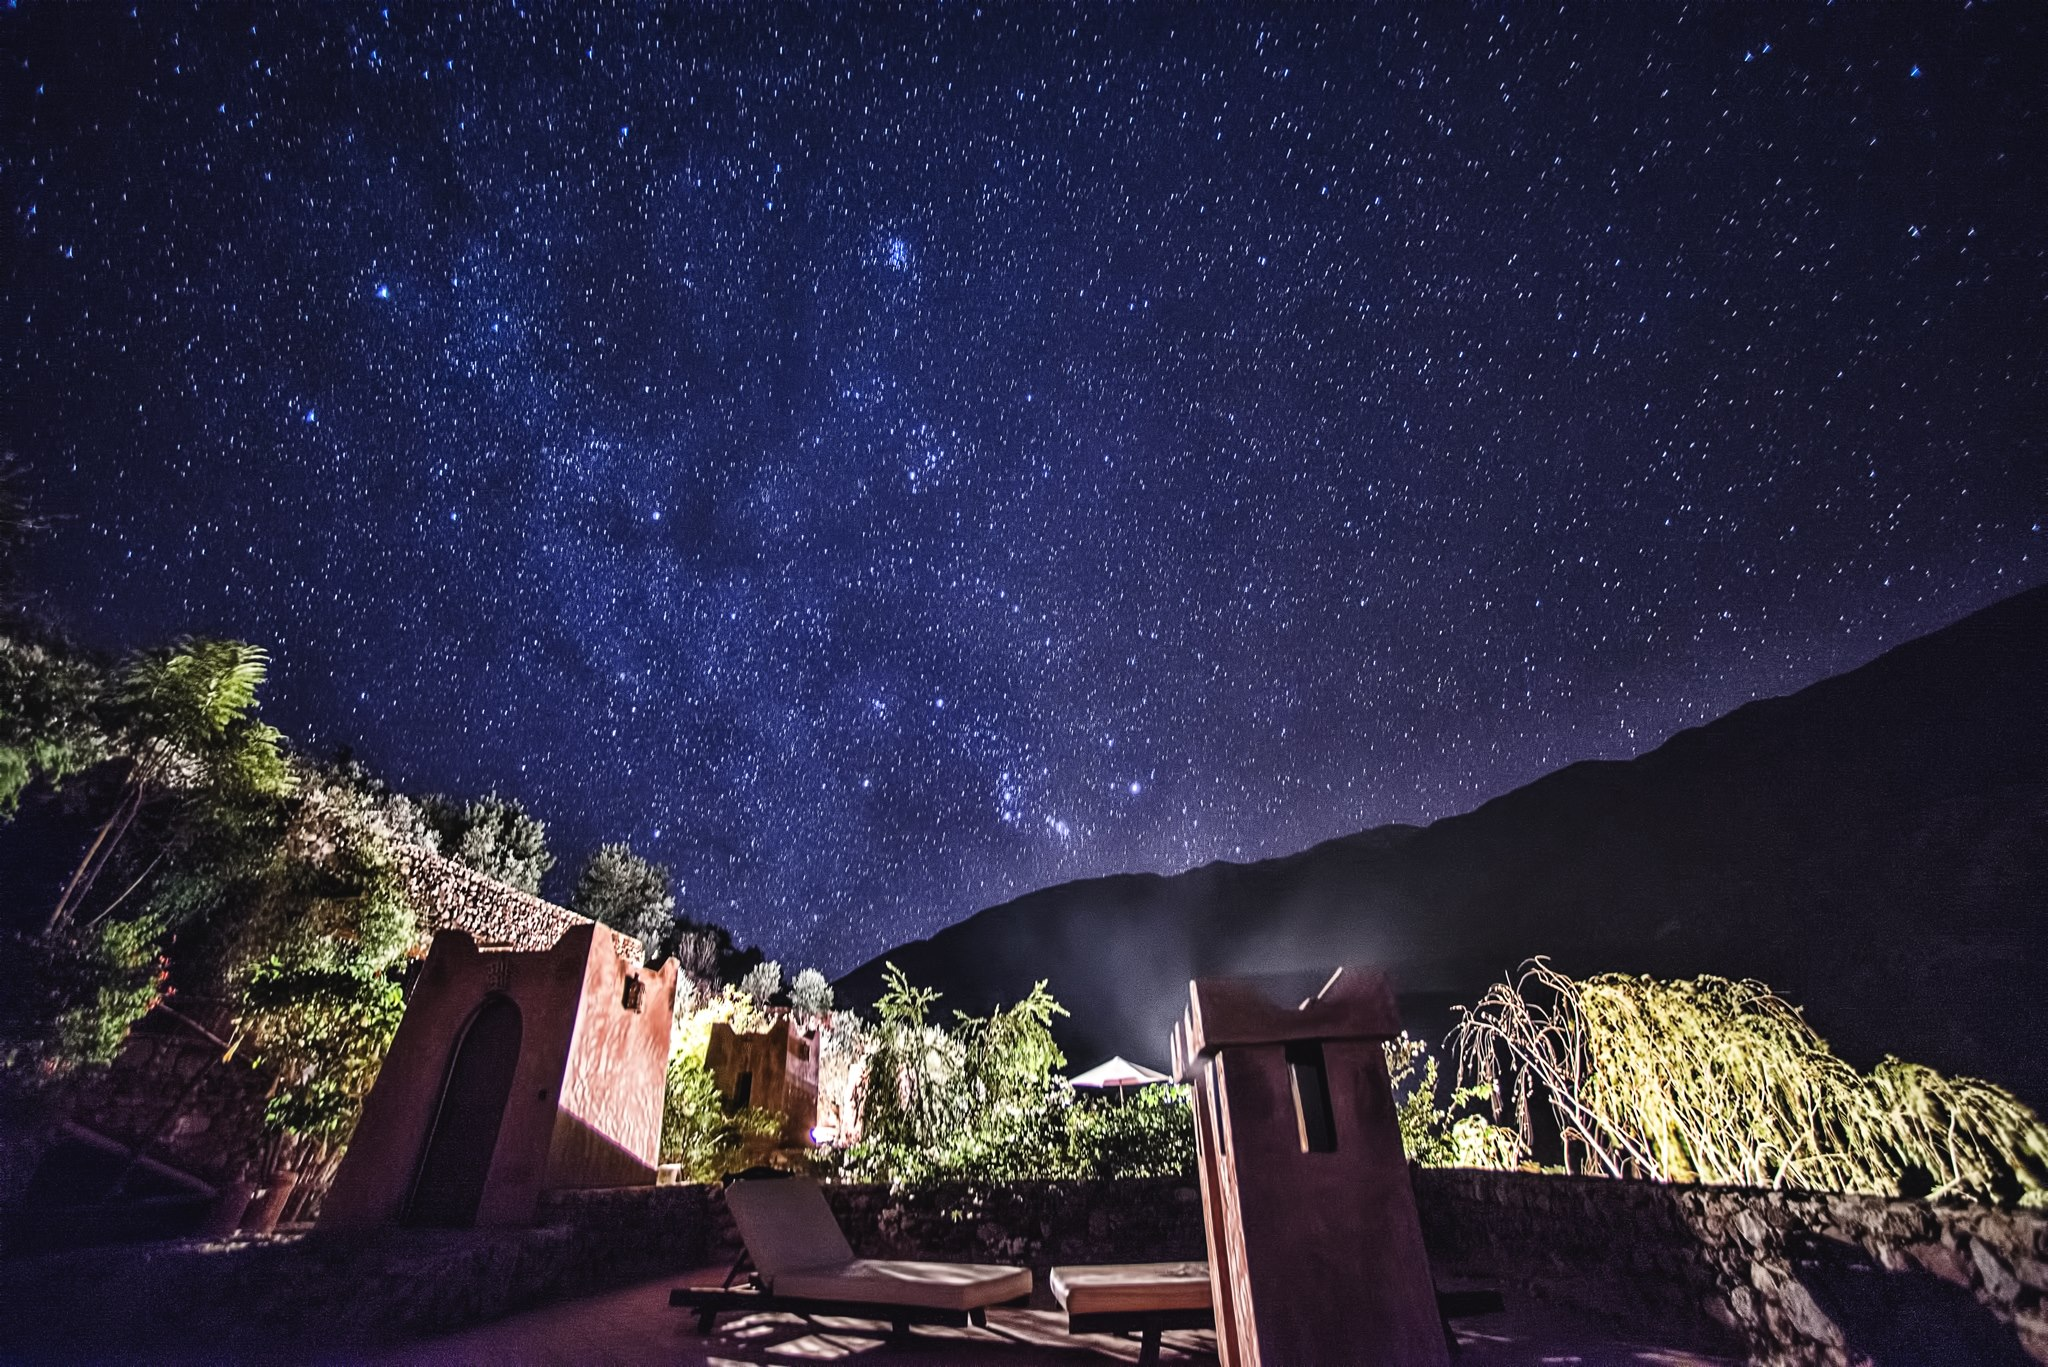 Kasbah Africa - Star-filled Sky